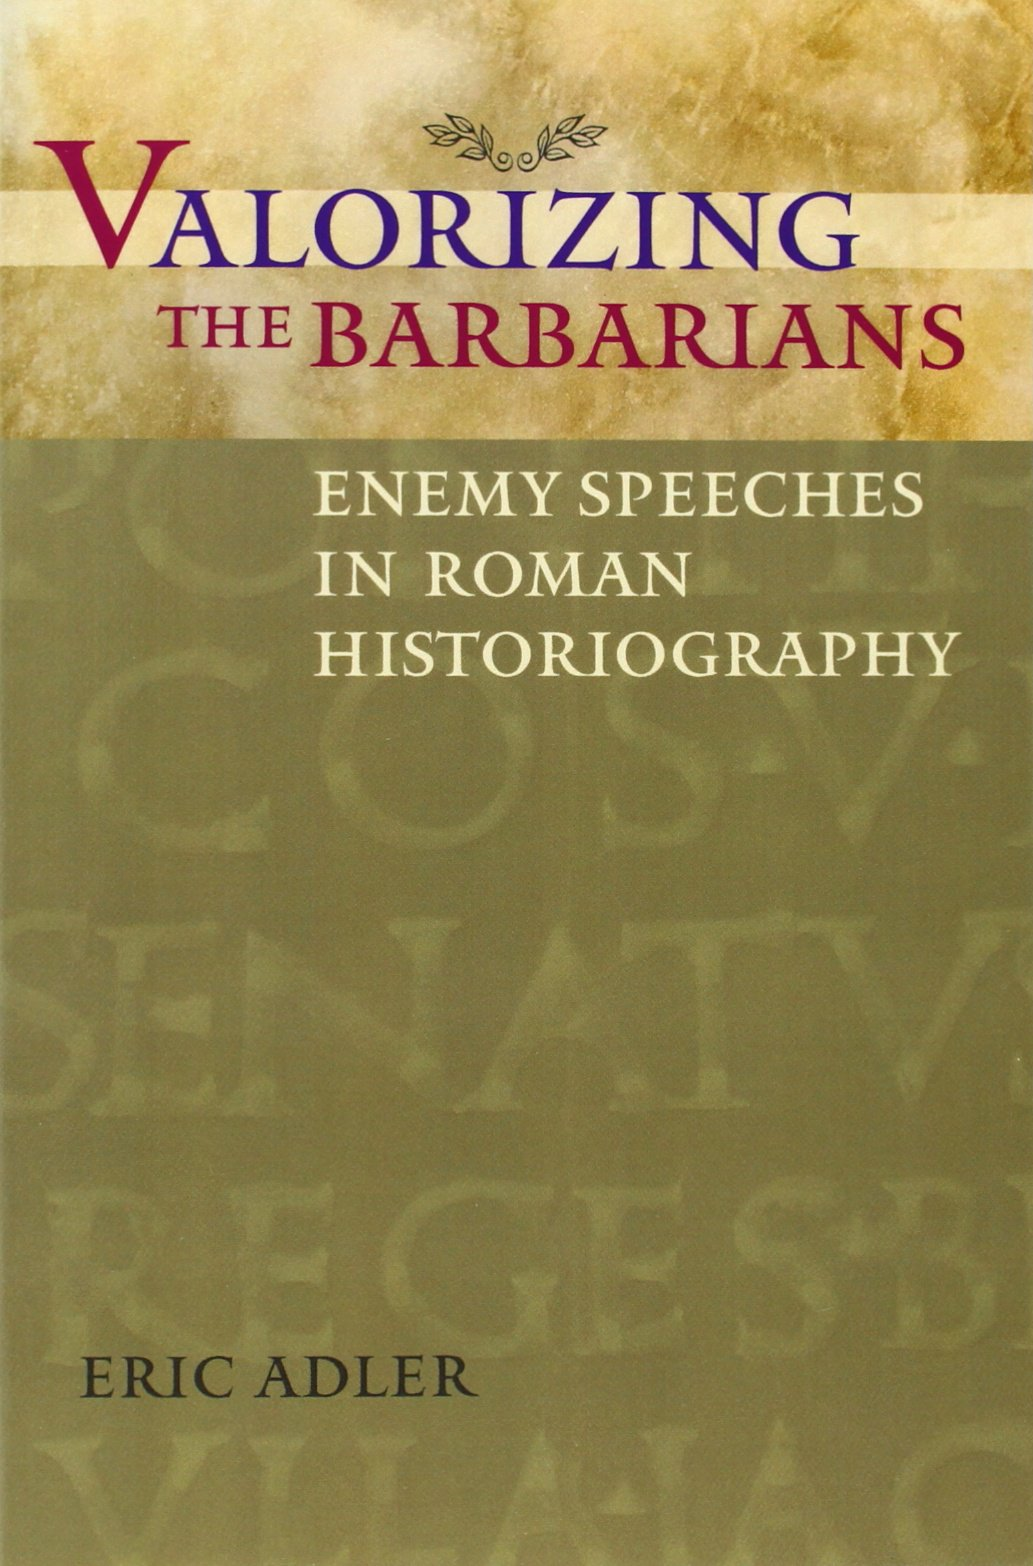 Valorizing the Barbarians: Enemy Speeches in Roman Historiography (Ashley and Peter Larkin Series in Greek and Roman Culture) ebook